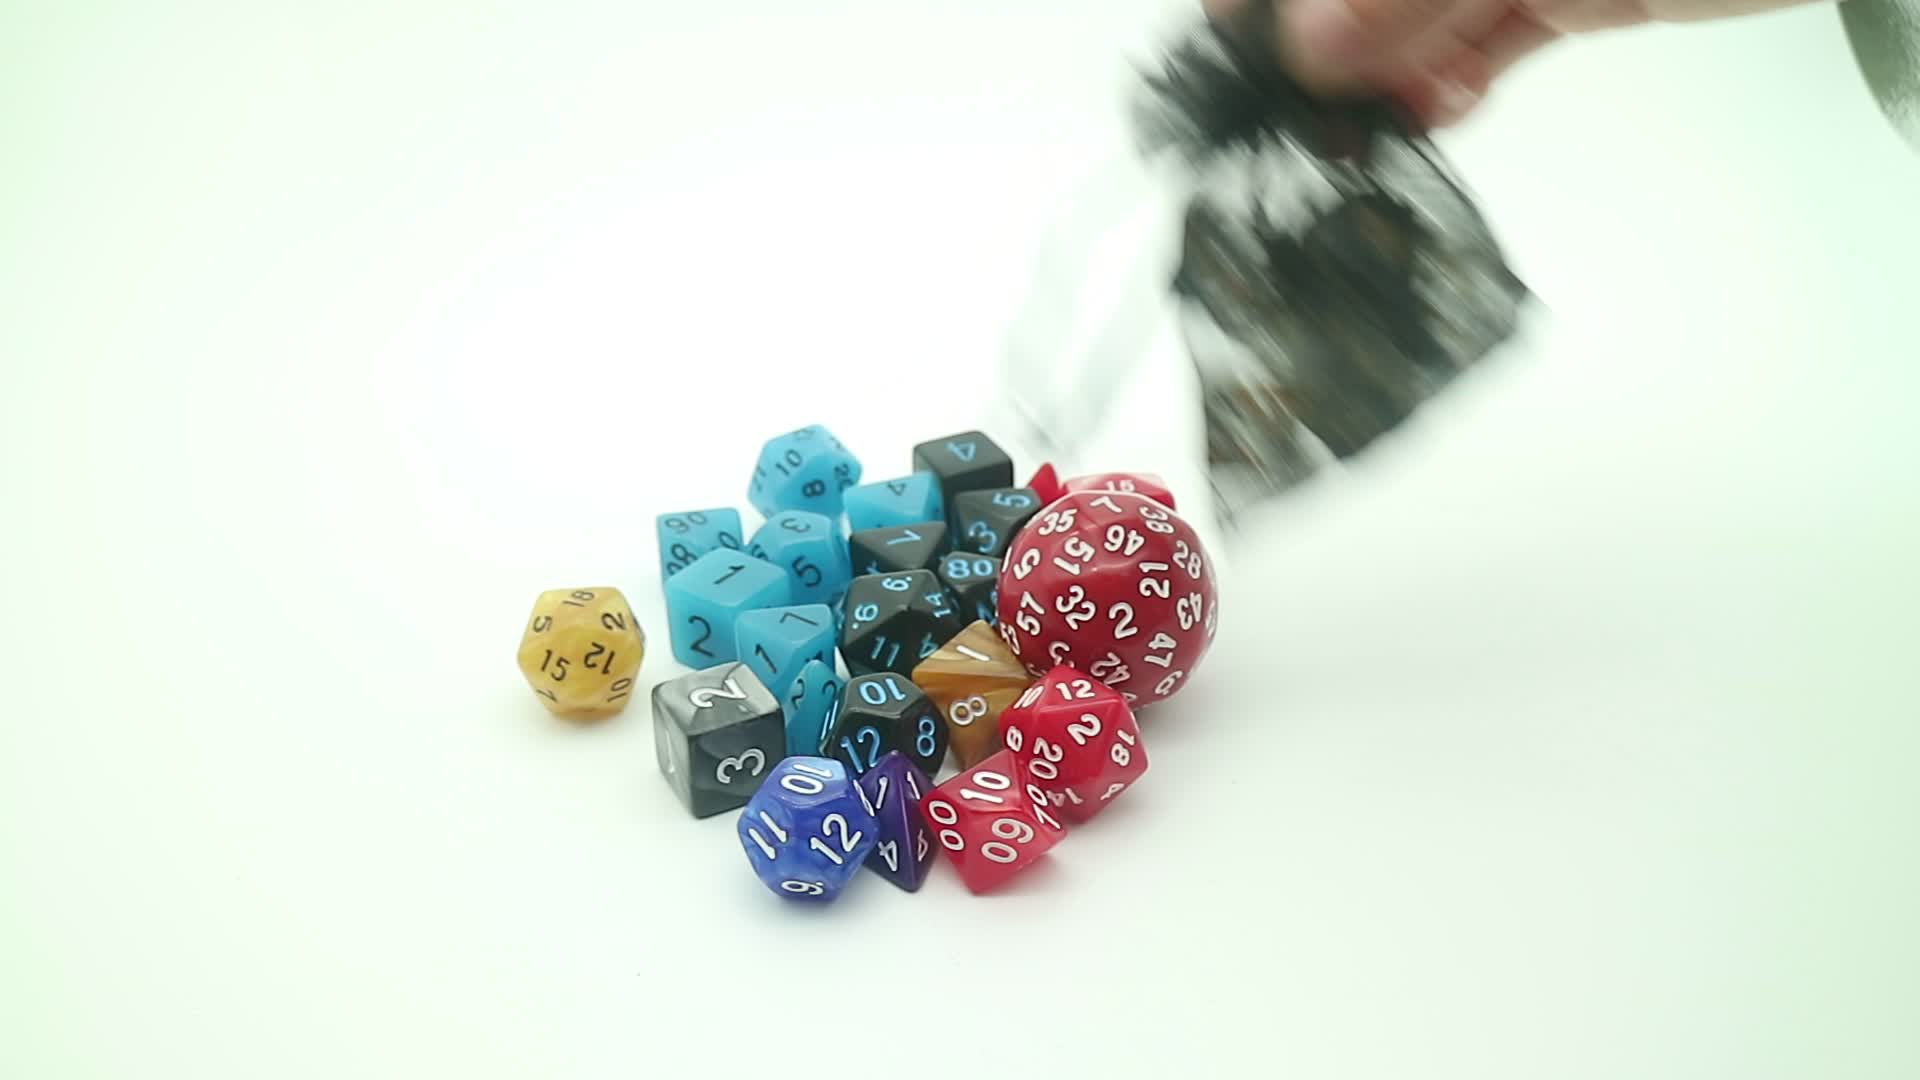 Antique Copper Solid Metal Polyhedral Dice Set Old Copper Metal Playing Game Dice for Dungeons and Dragons RPG Dice Gaming